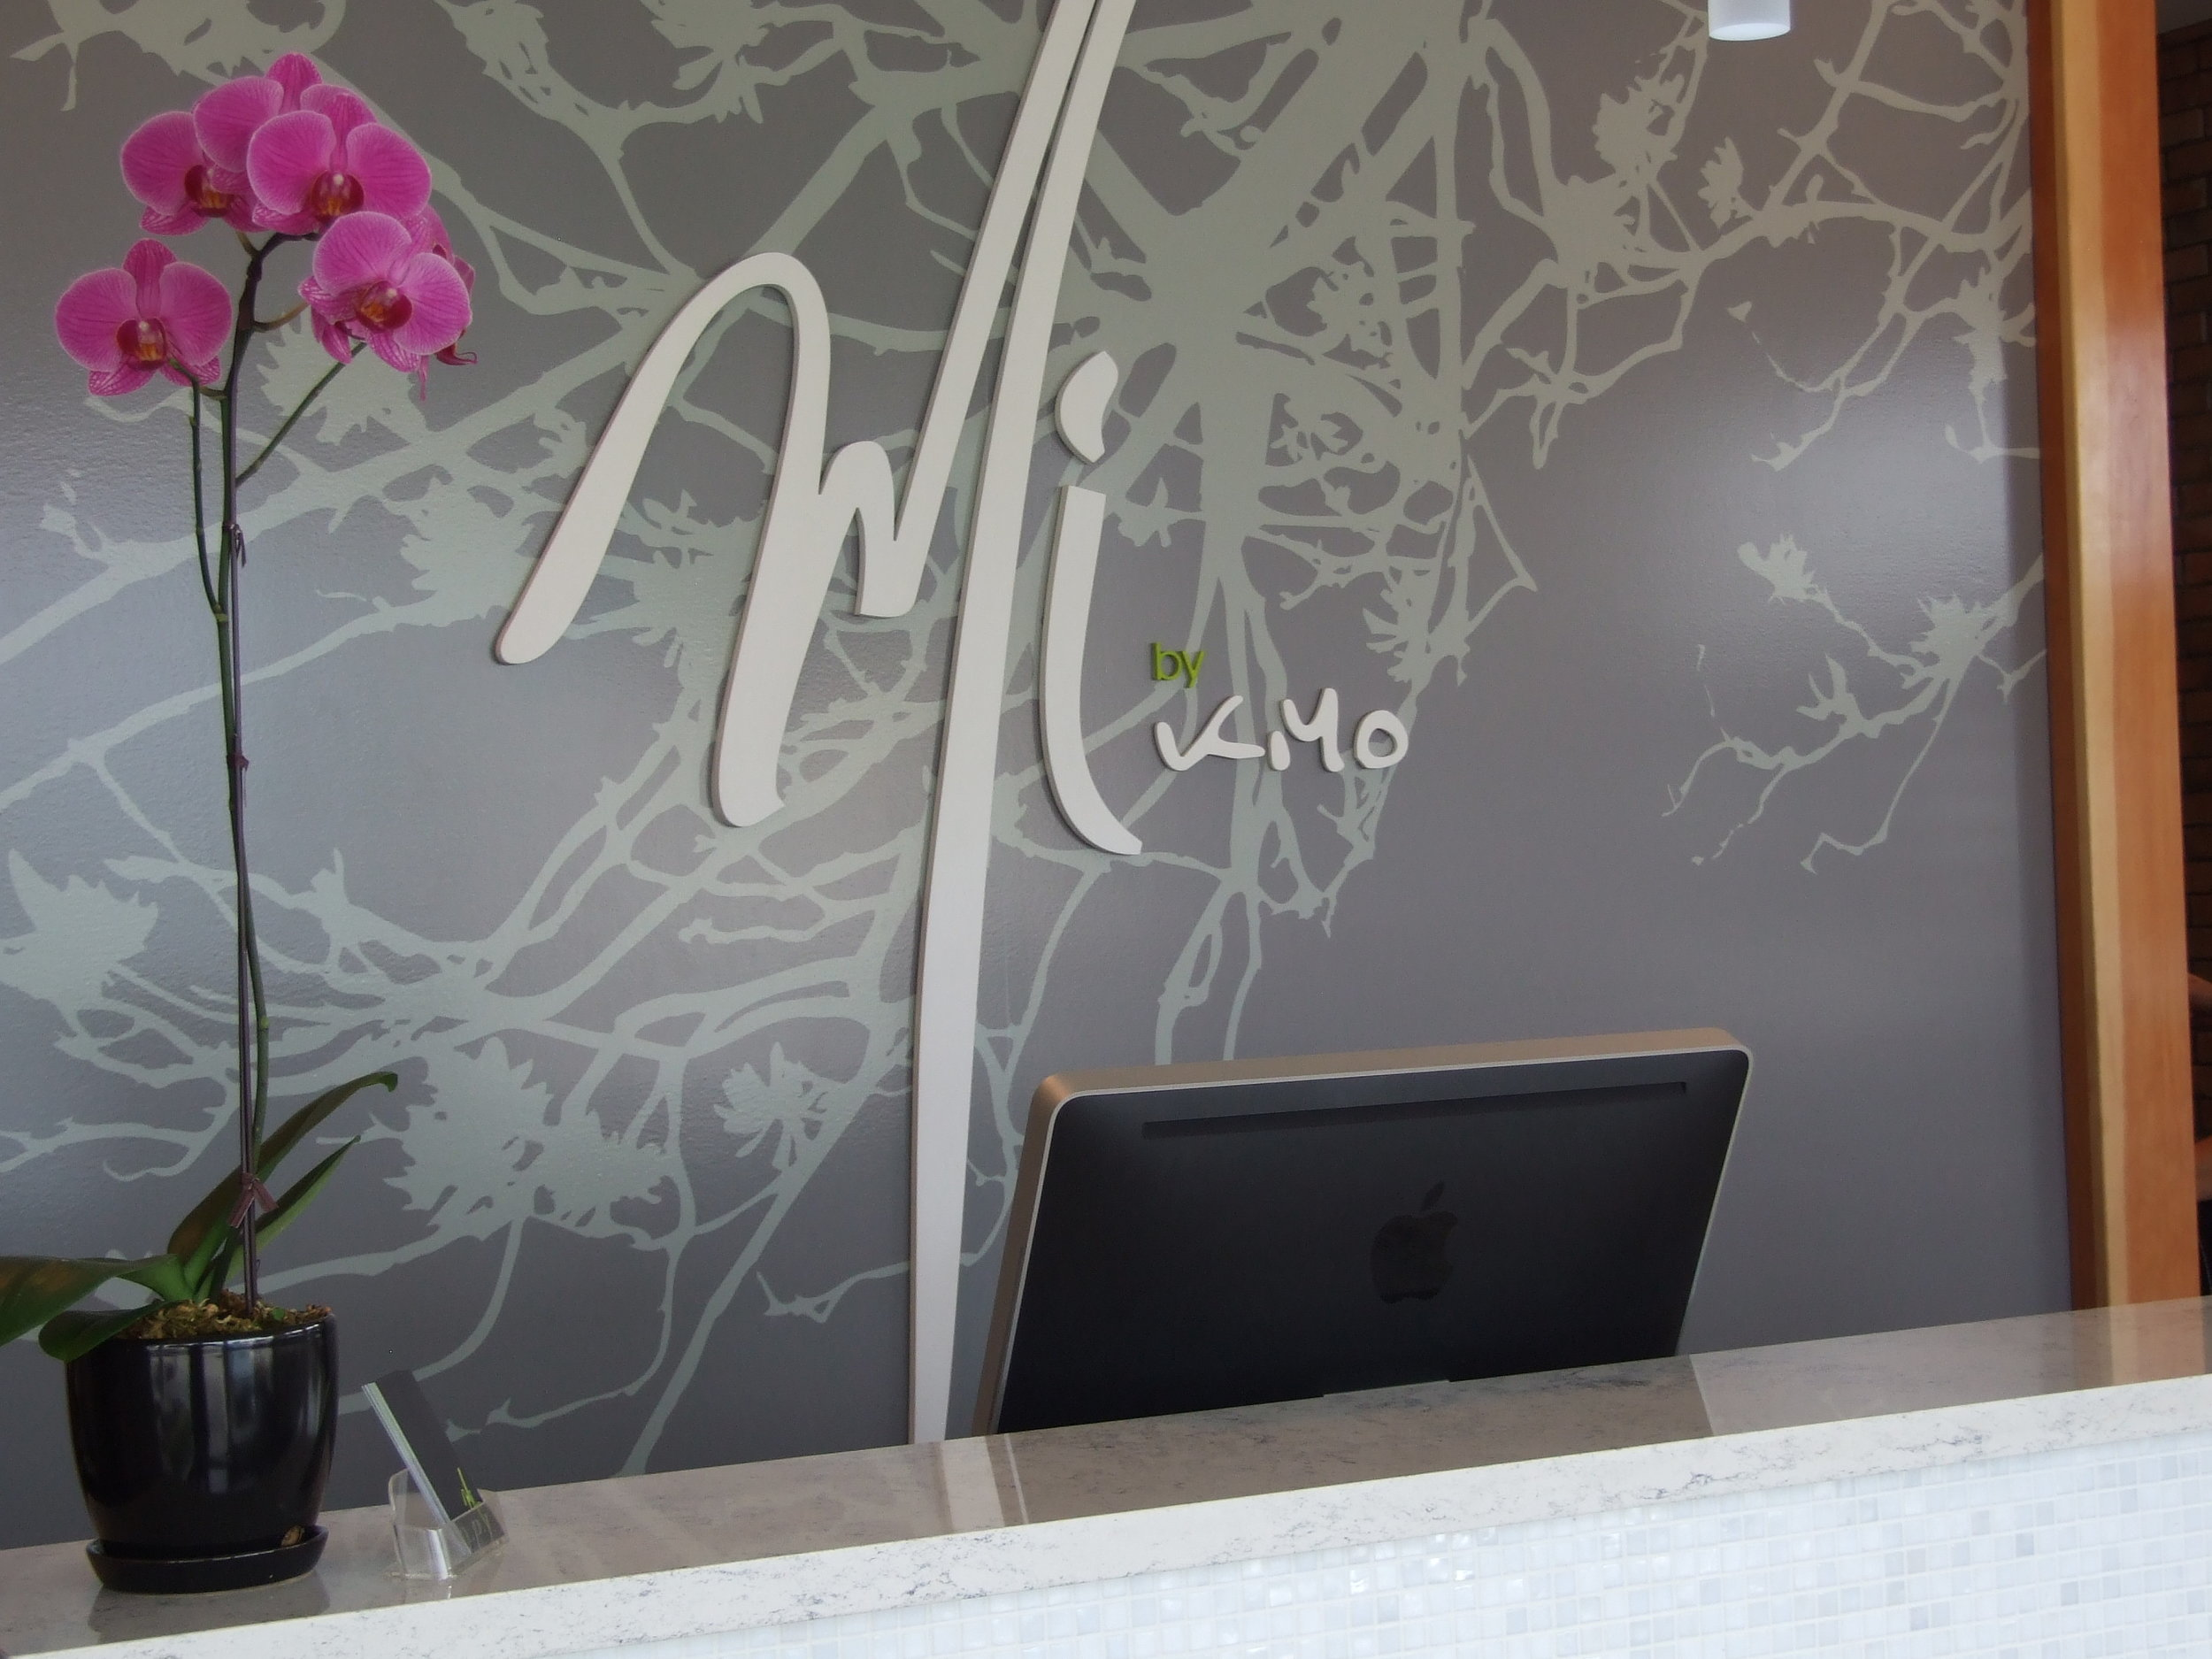 mi salon_int sign 2.JPG